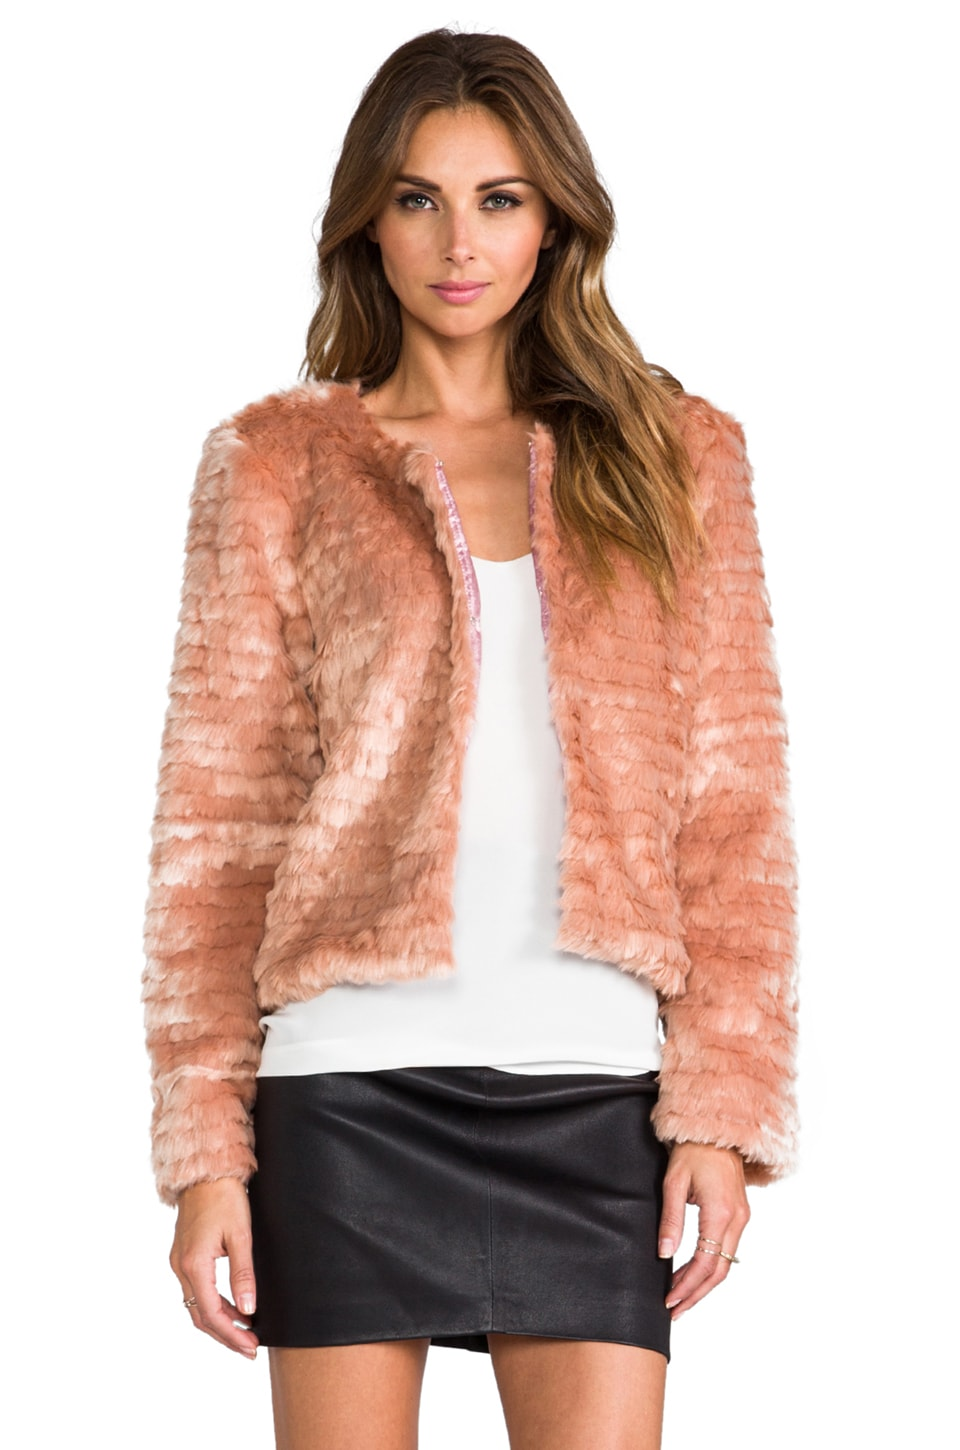 For Love & Lemons Faux Fur Jacket in Pale Pink